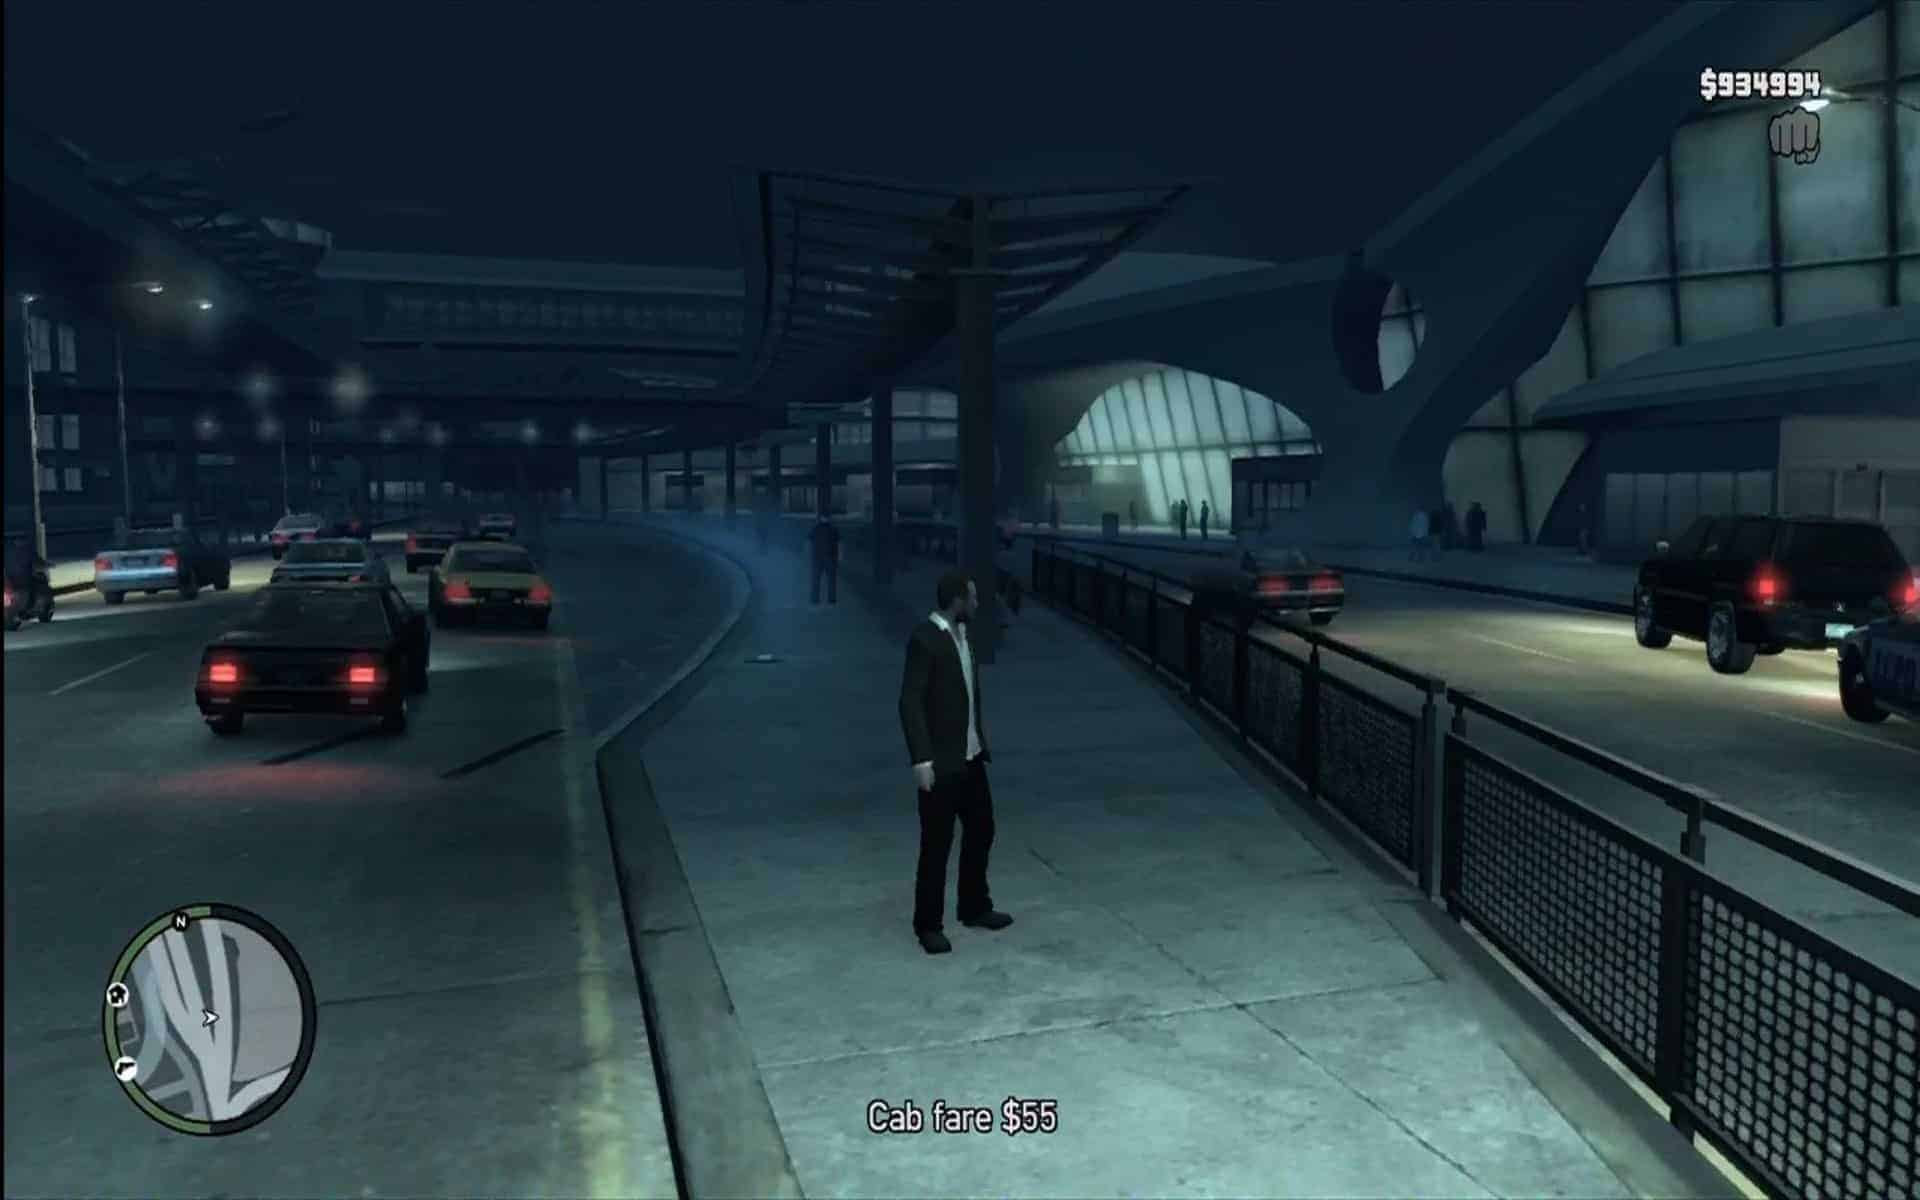 gta 4 download pc in parts